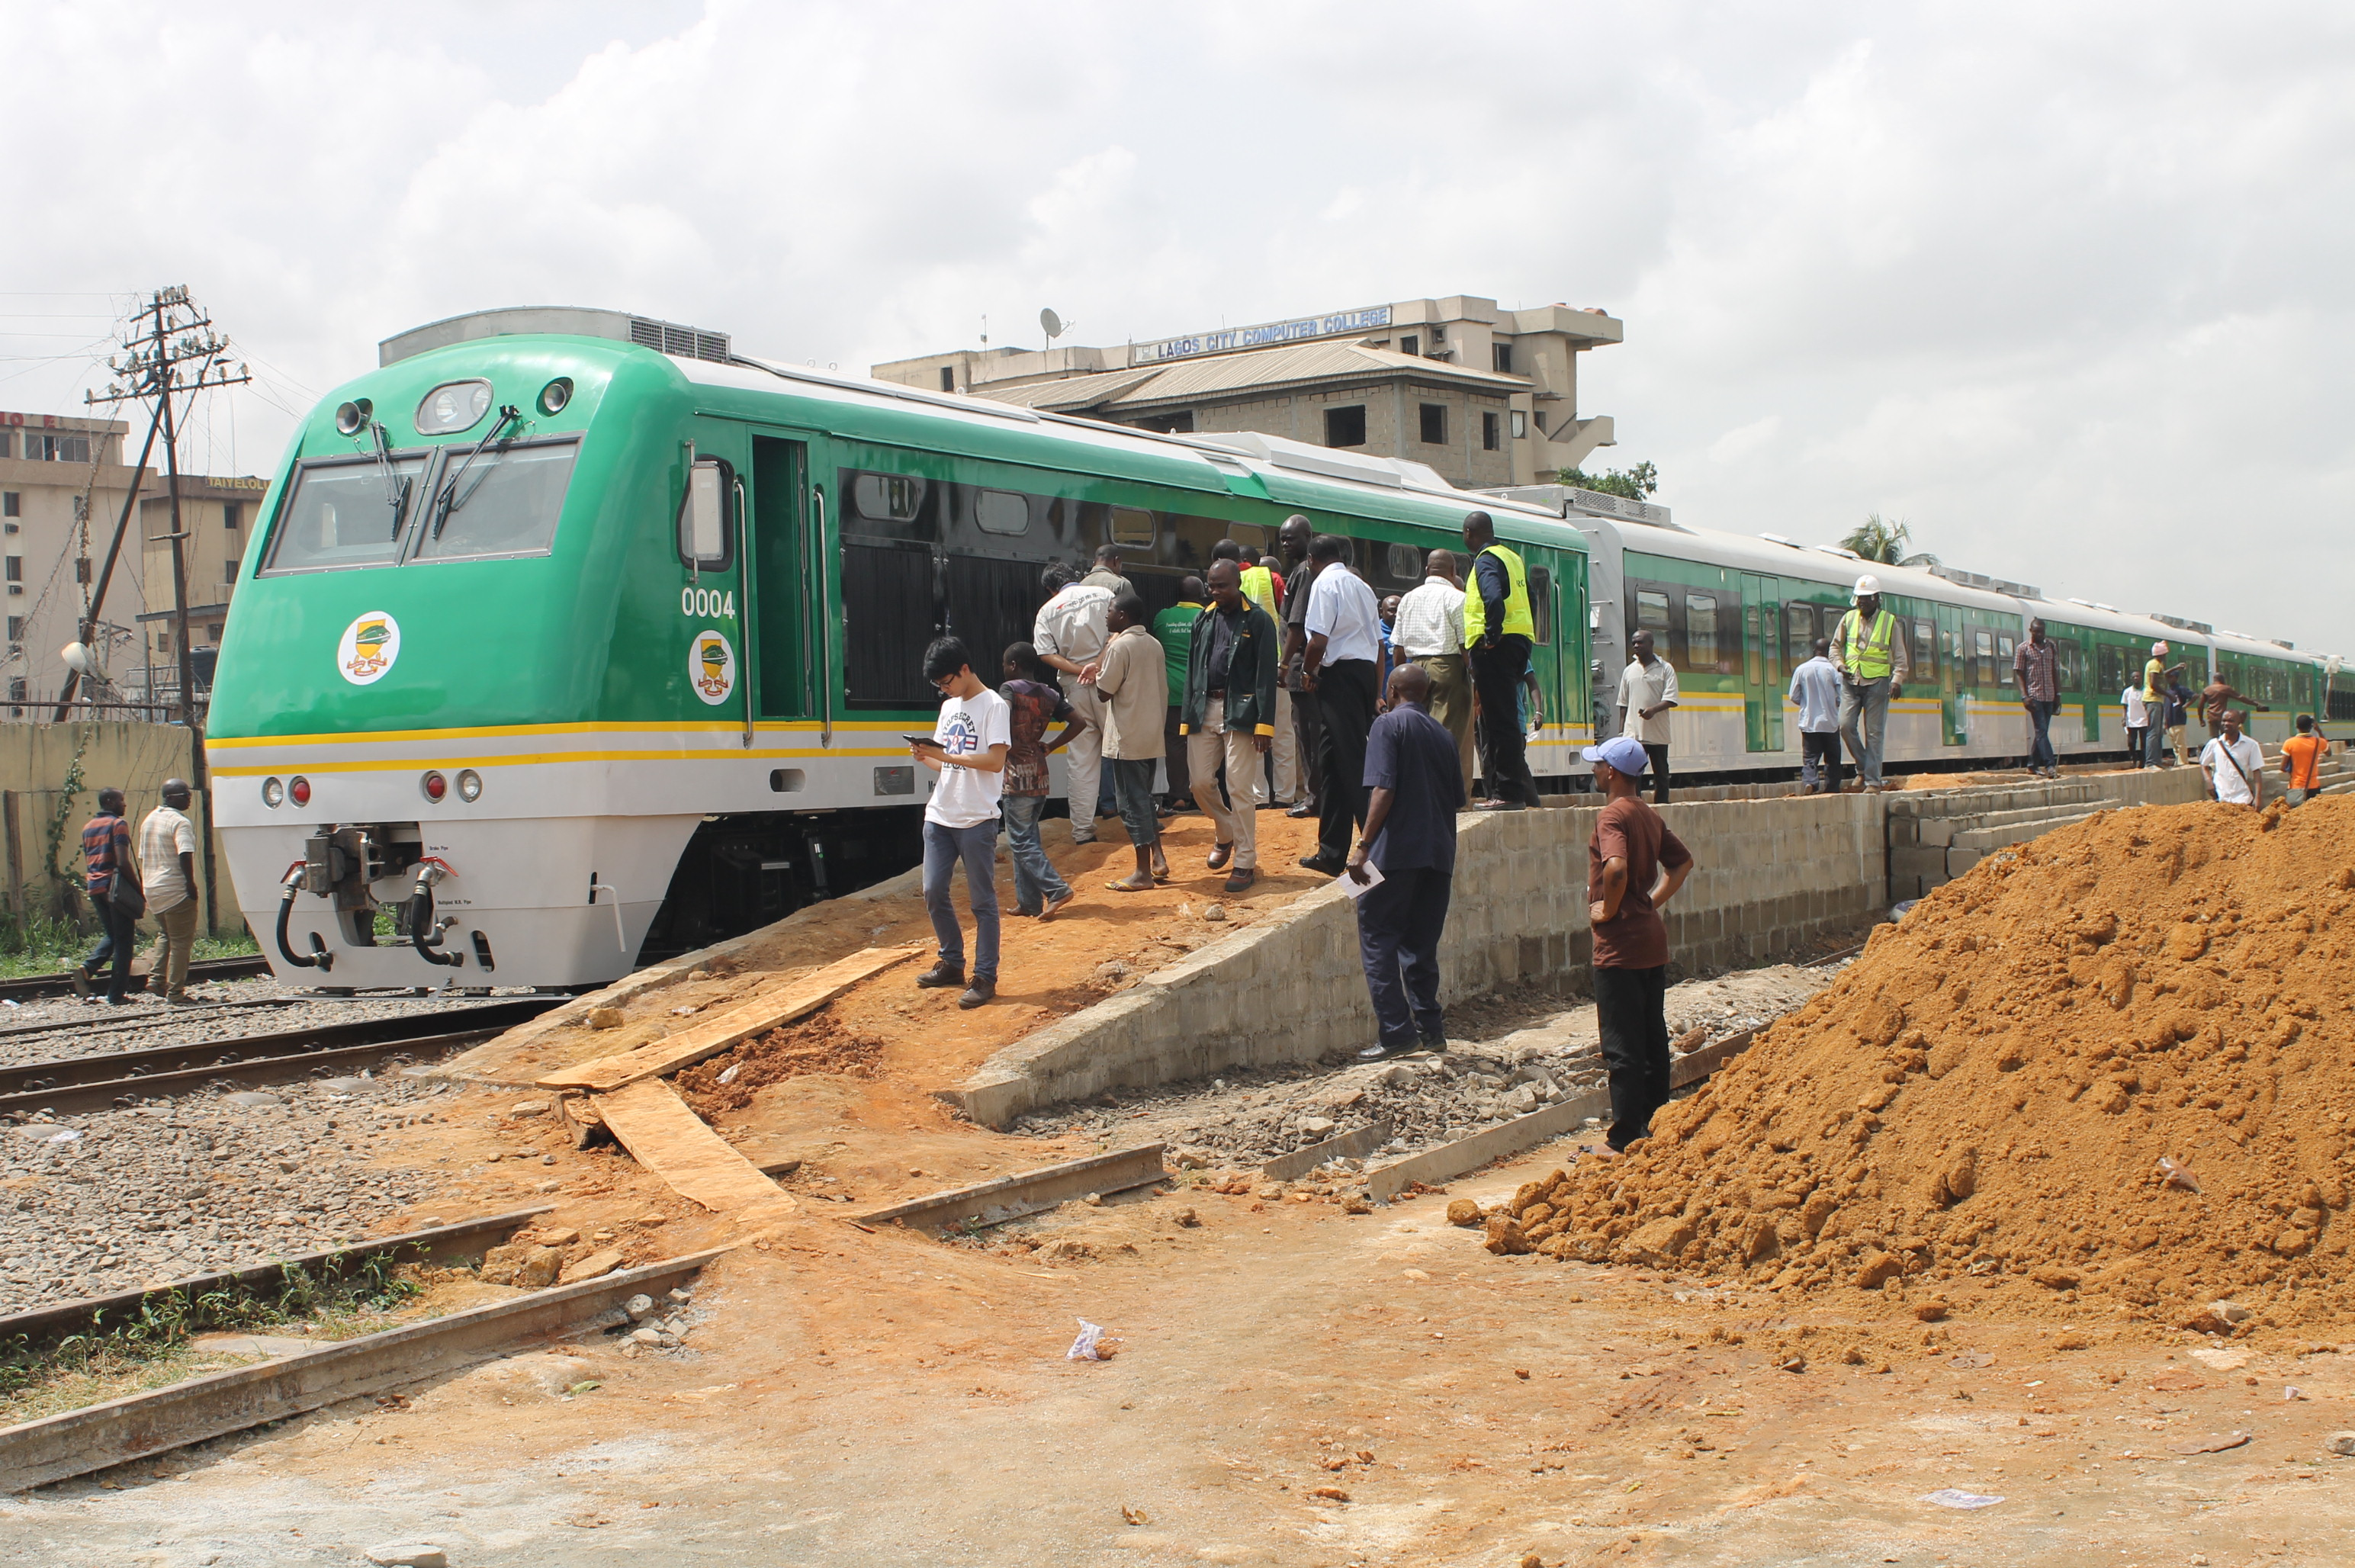 A large light rail in the Nigerian state of Kano will be built by a Chinese company 77